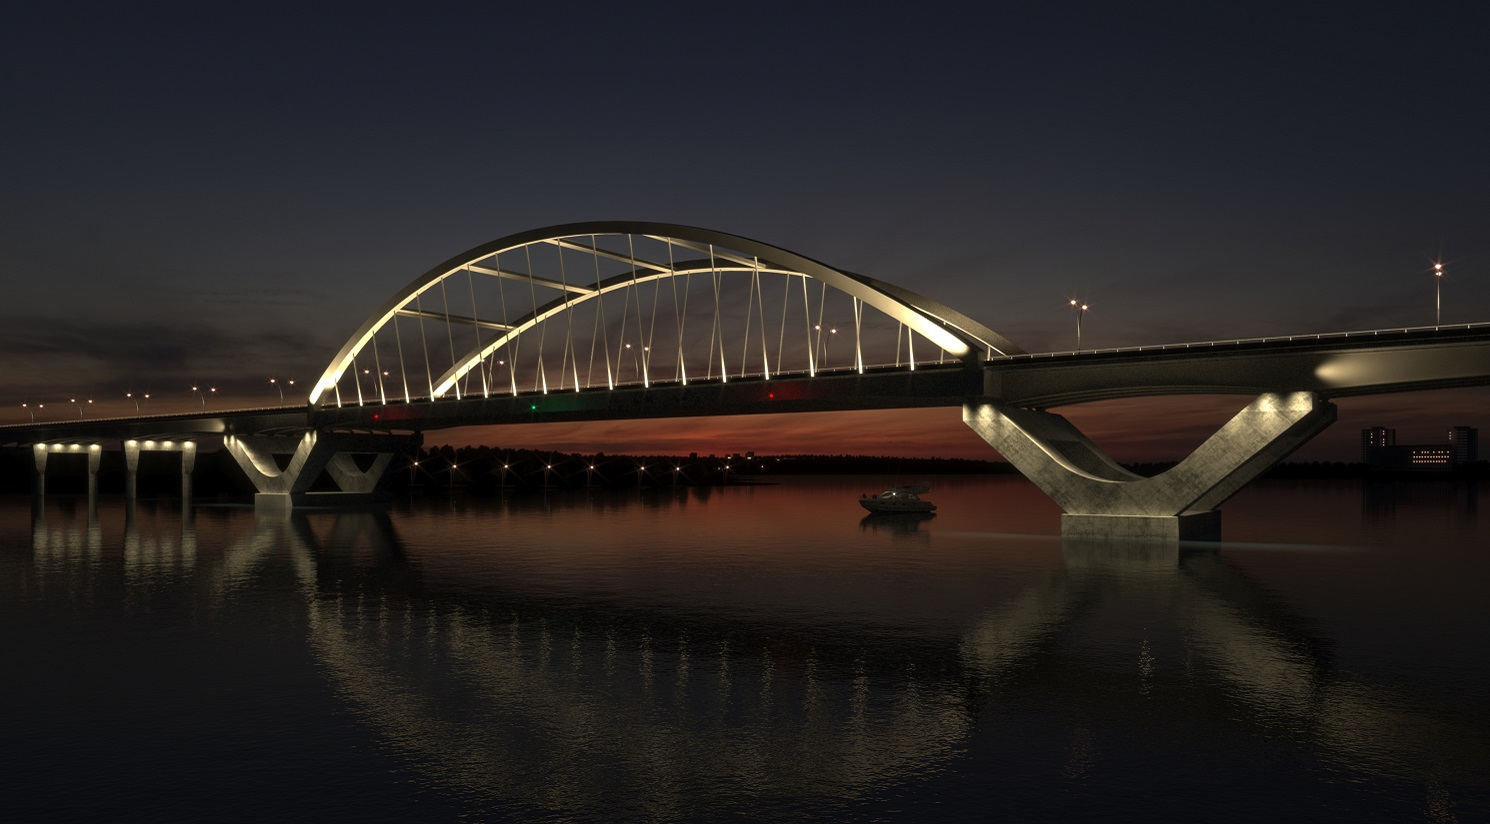 SYSTRA, Kiewit and Hatch to build Third Crossing bridge in